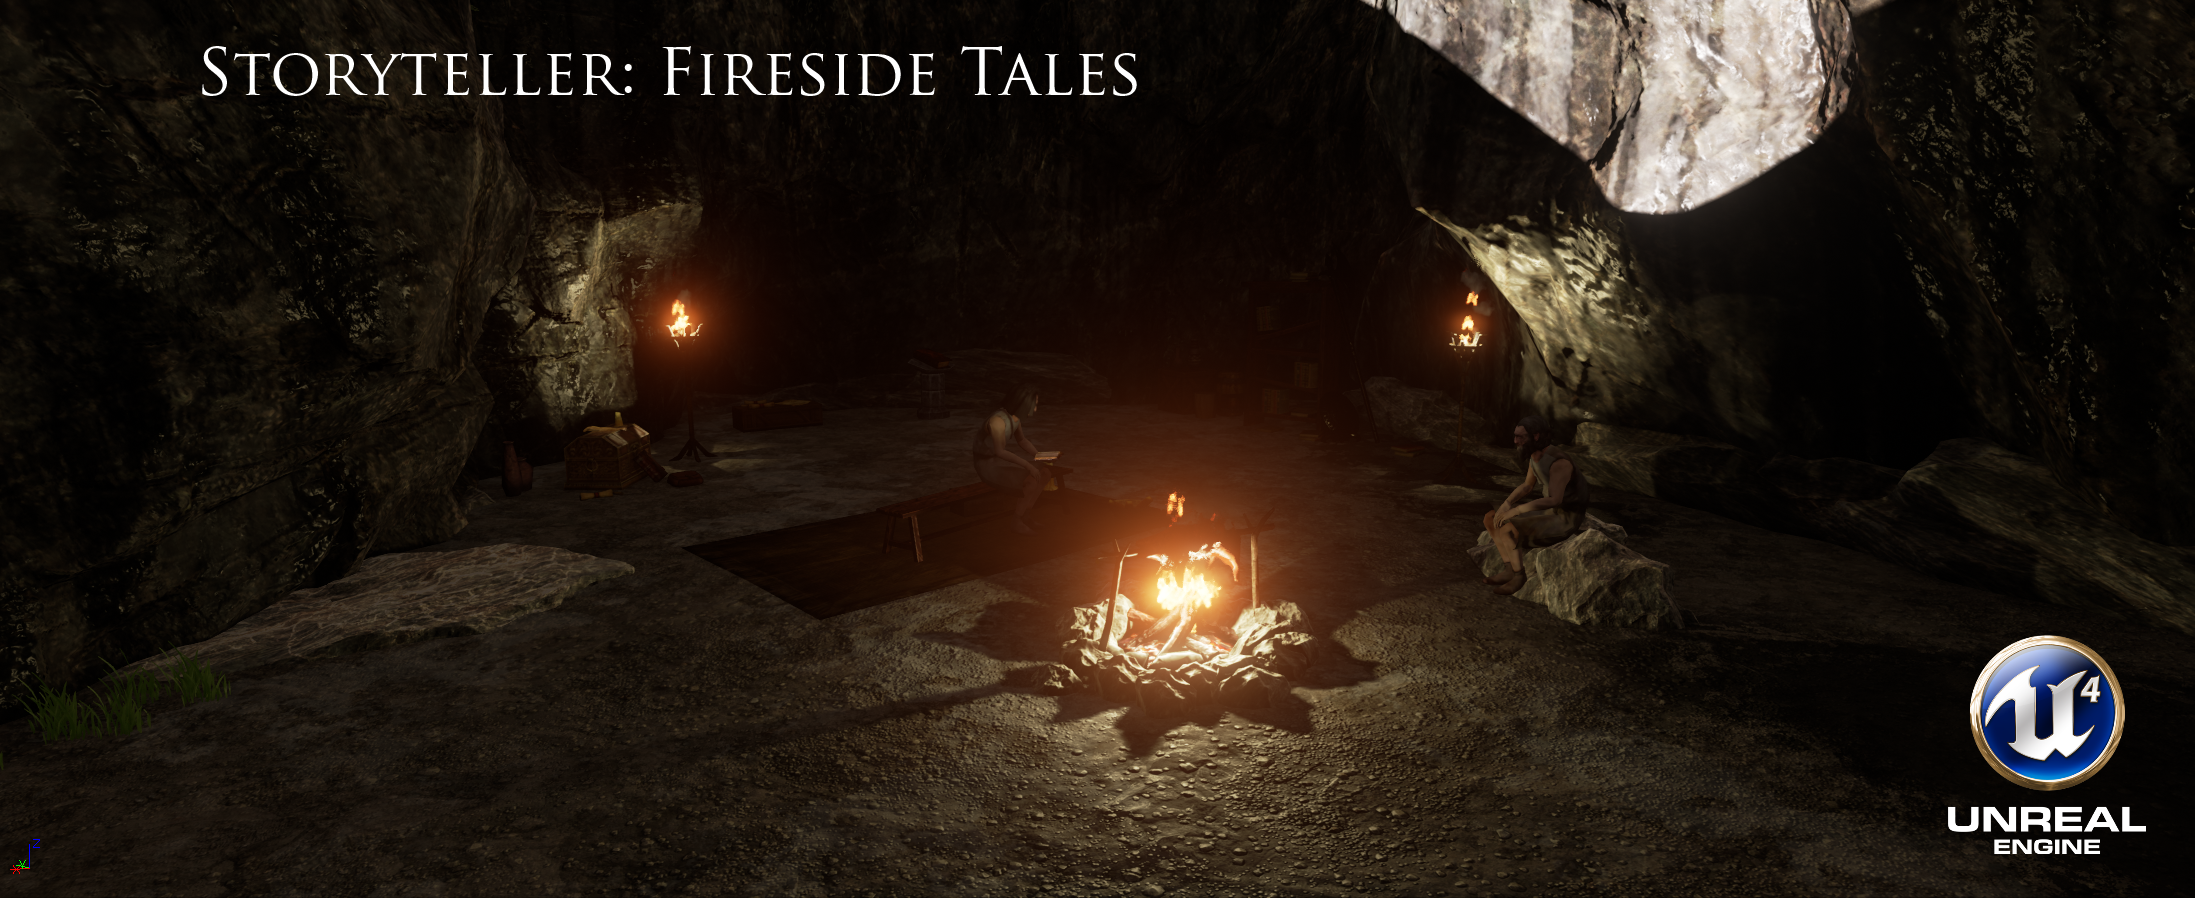 Storyteller: Fireside Tales Screenshots and Splash